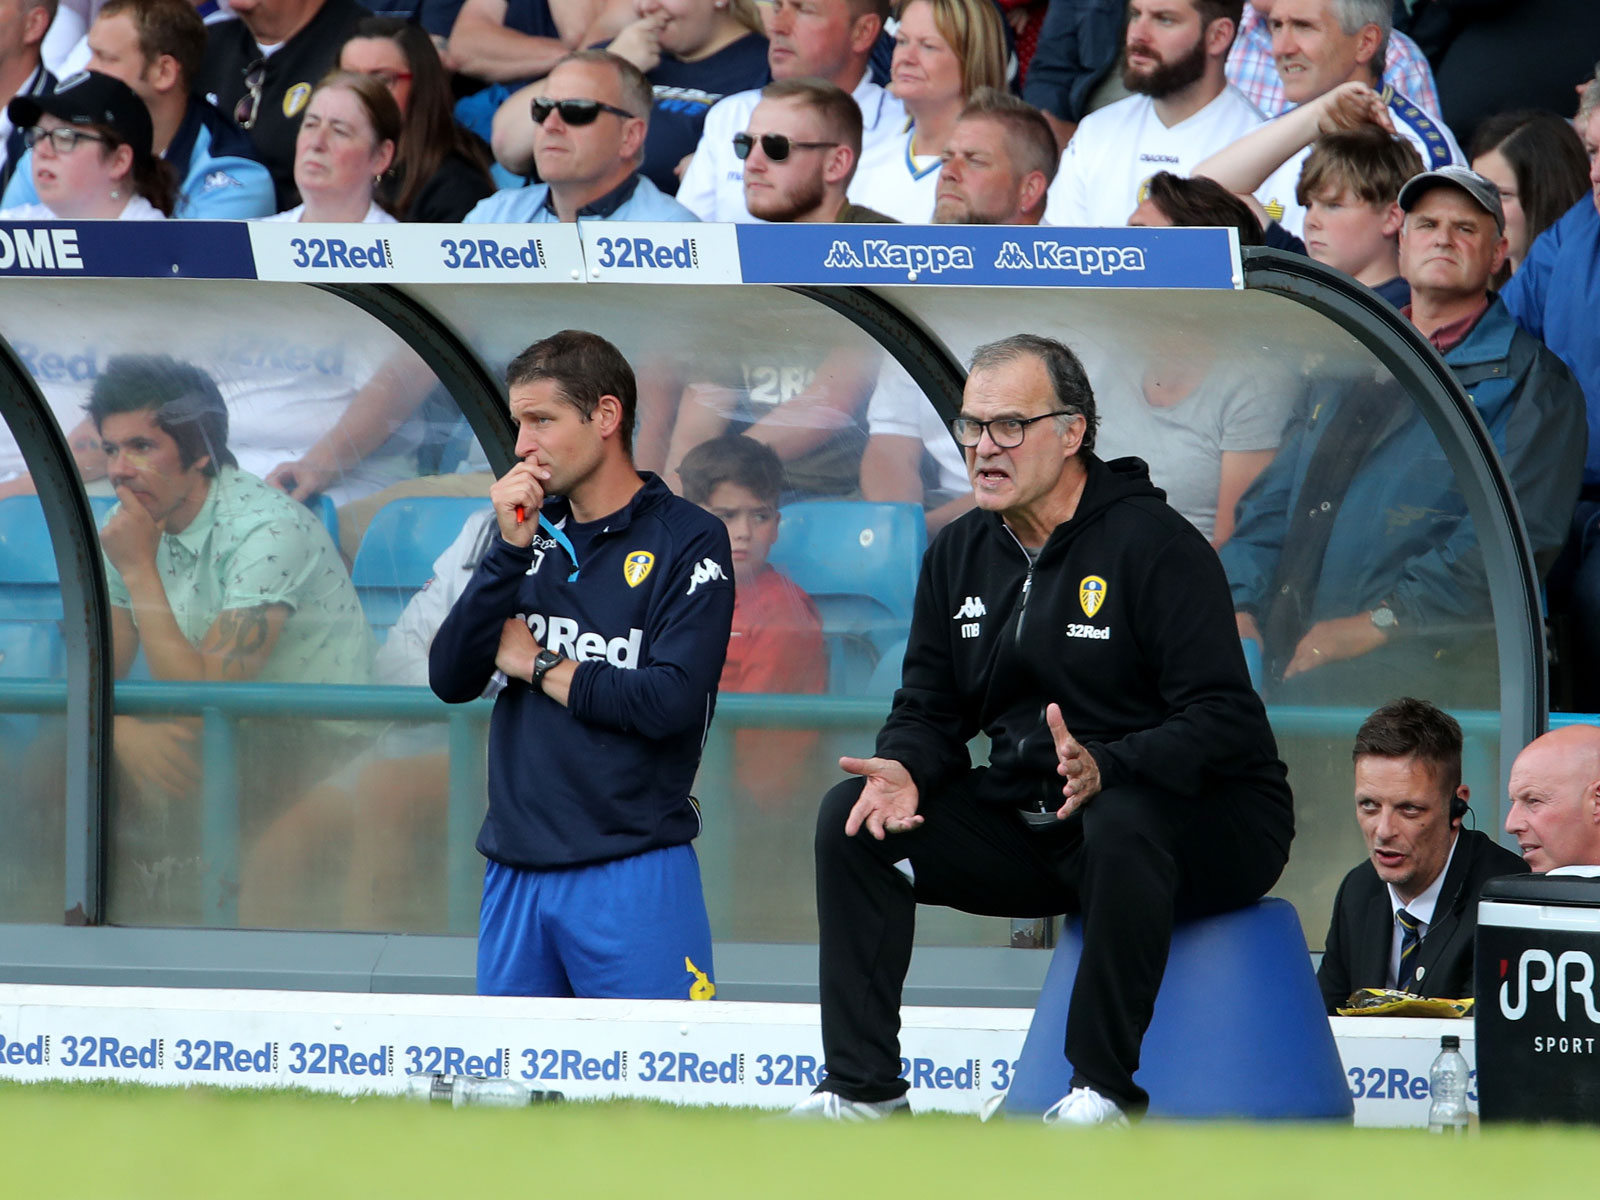 Marcelo Bielsa has excelled early as Leeds United manager